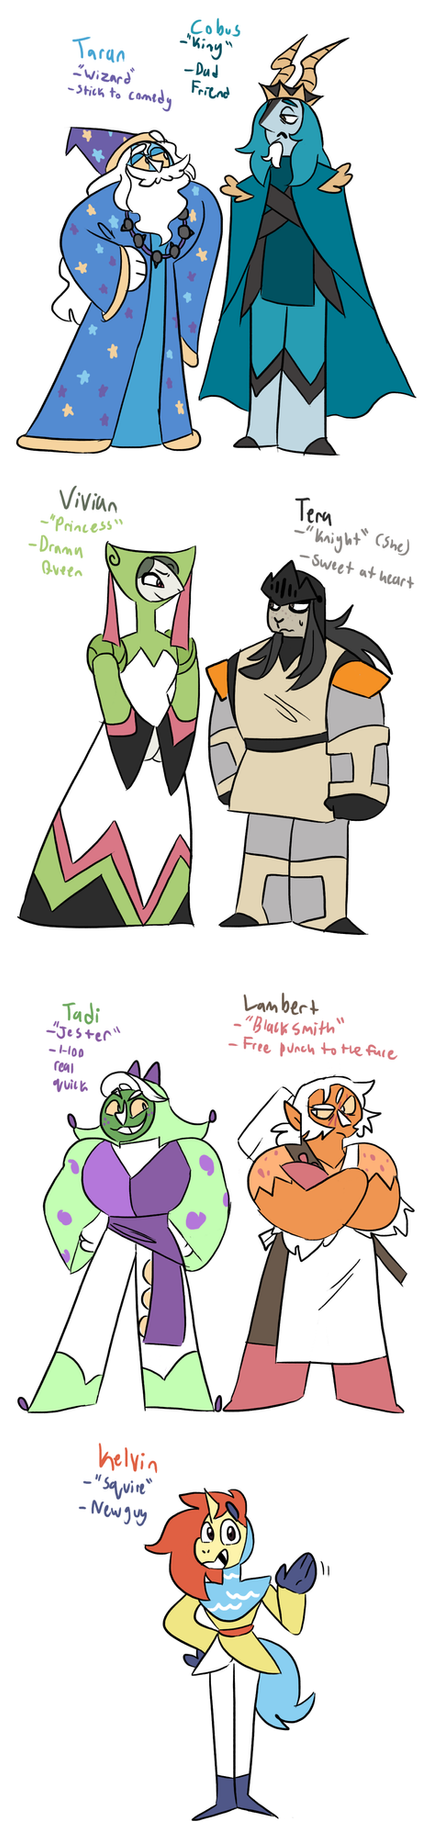 Pokekids: Medieval Times Designs by NoneToon